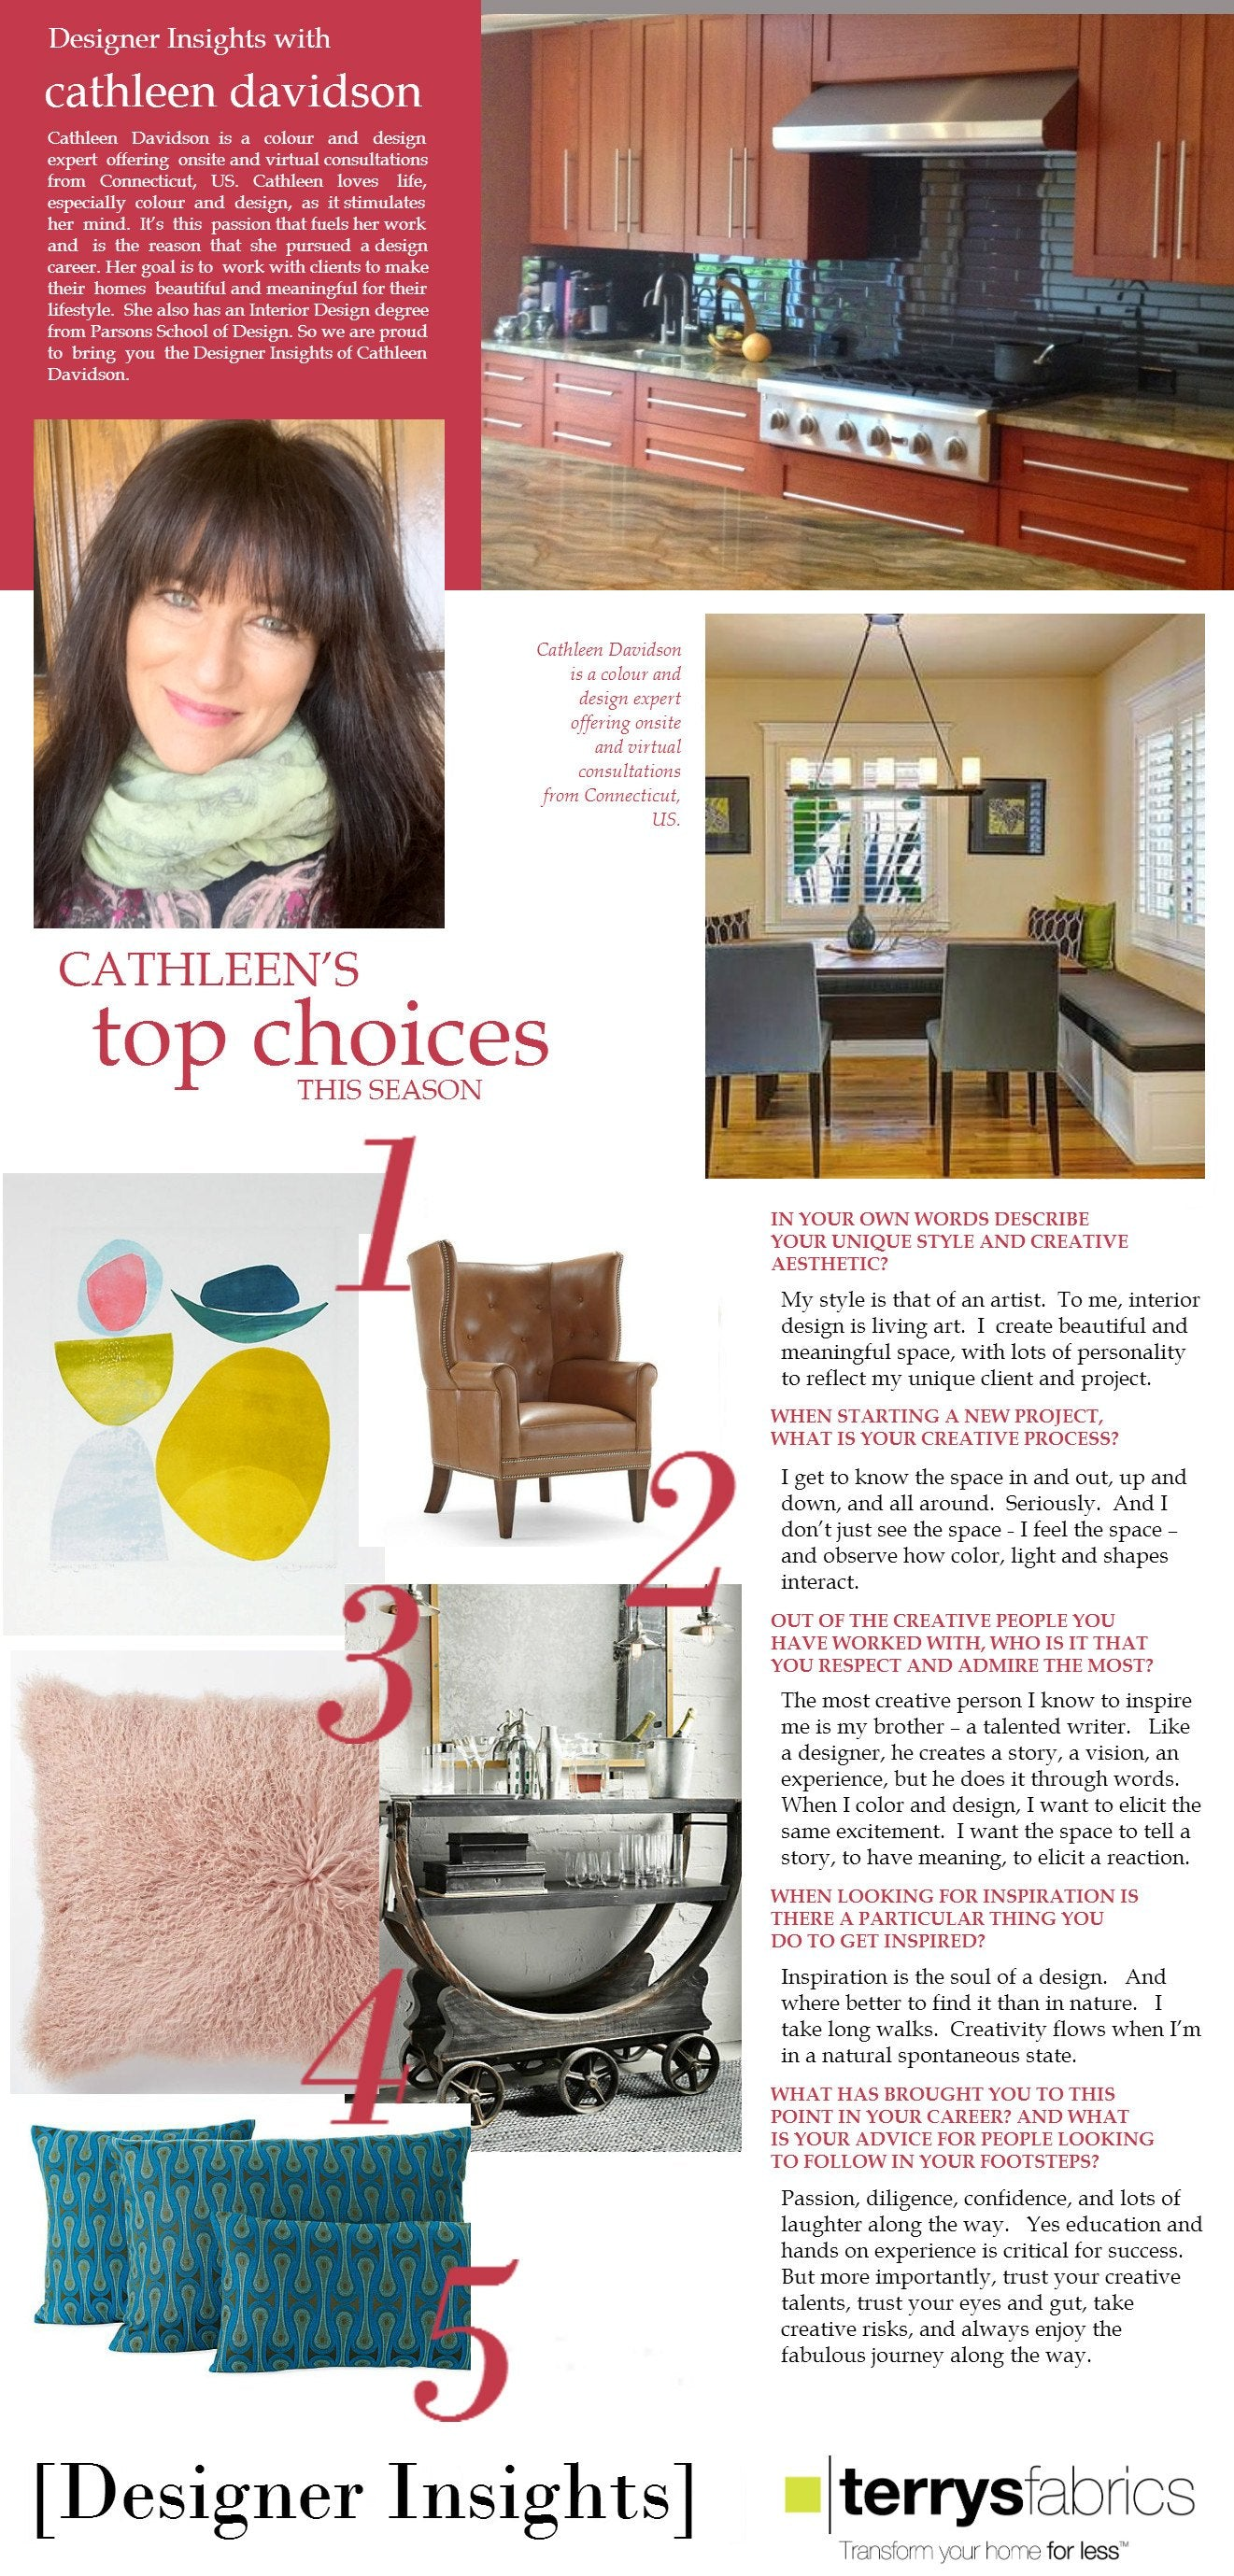 Designer Insights - Cathleen Davidson